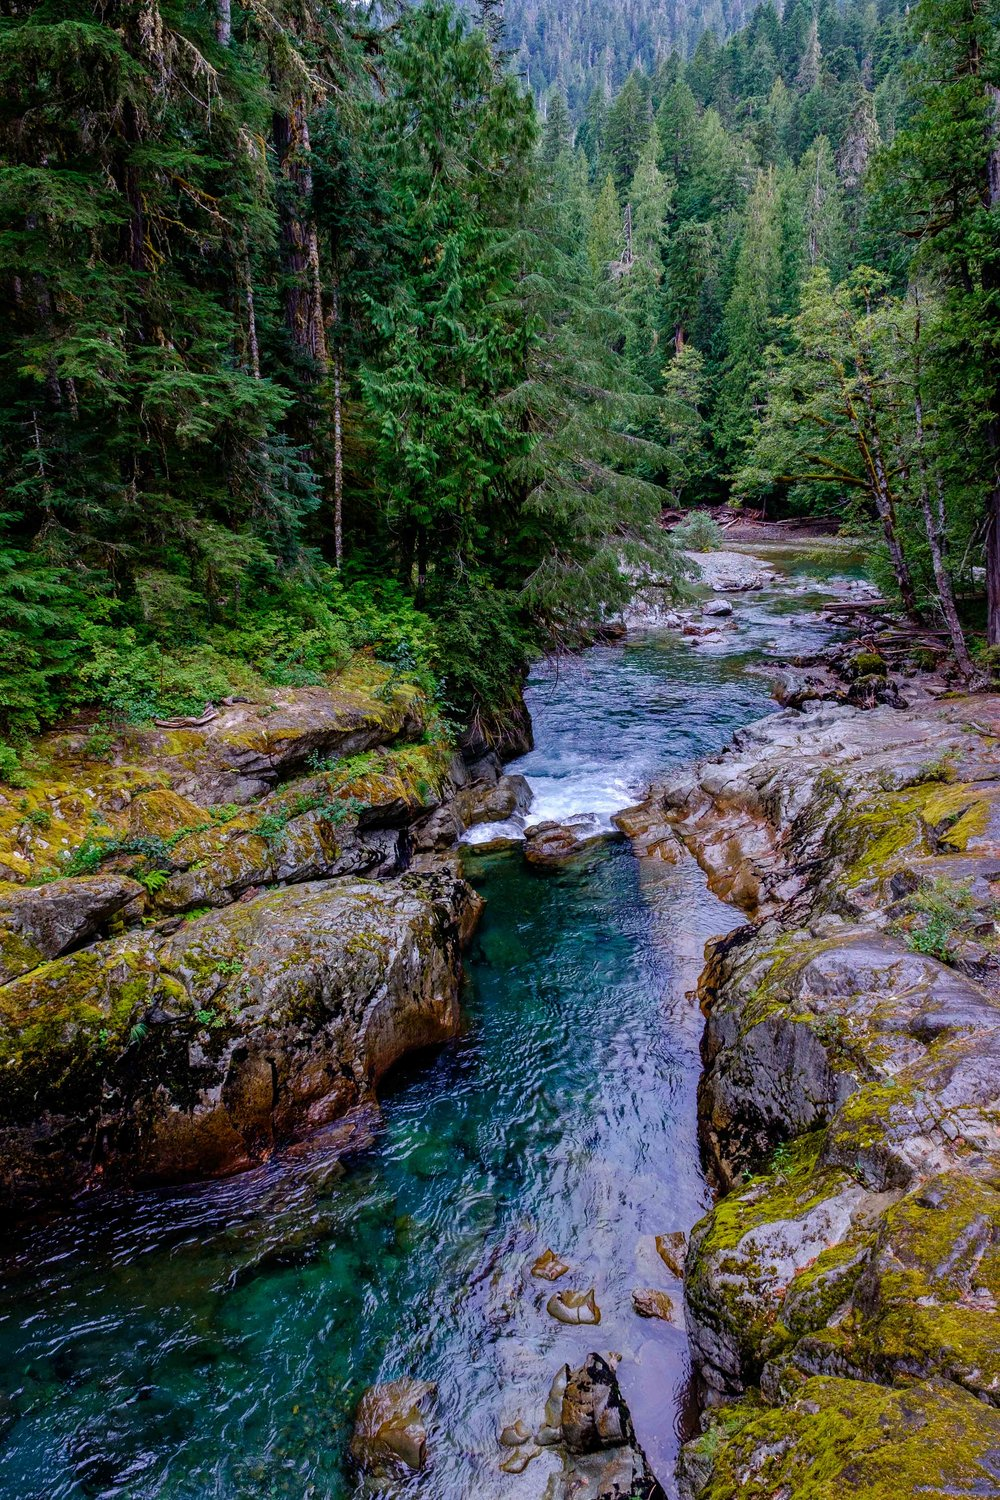 There are 6 major rivers that are offshoots of Mount Rainier. This is the Nisqually, in the Paradise area of the park.